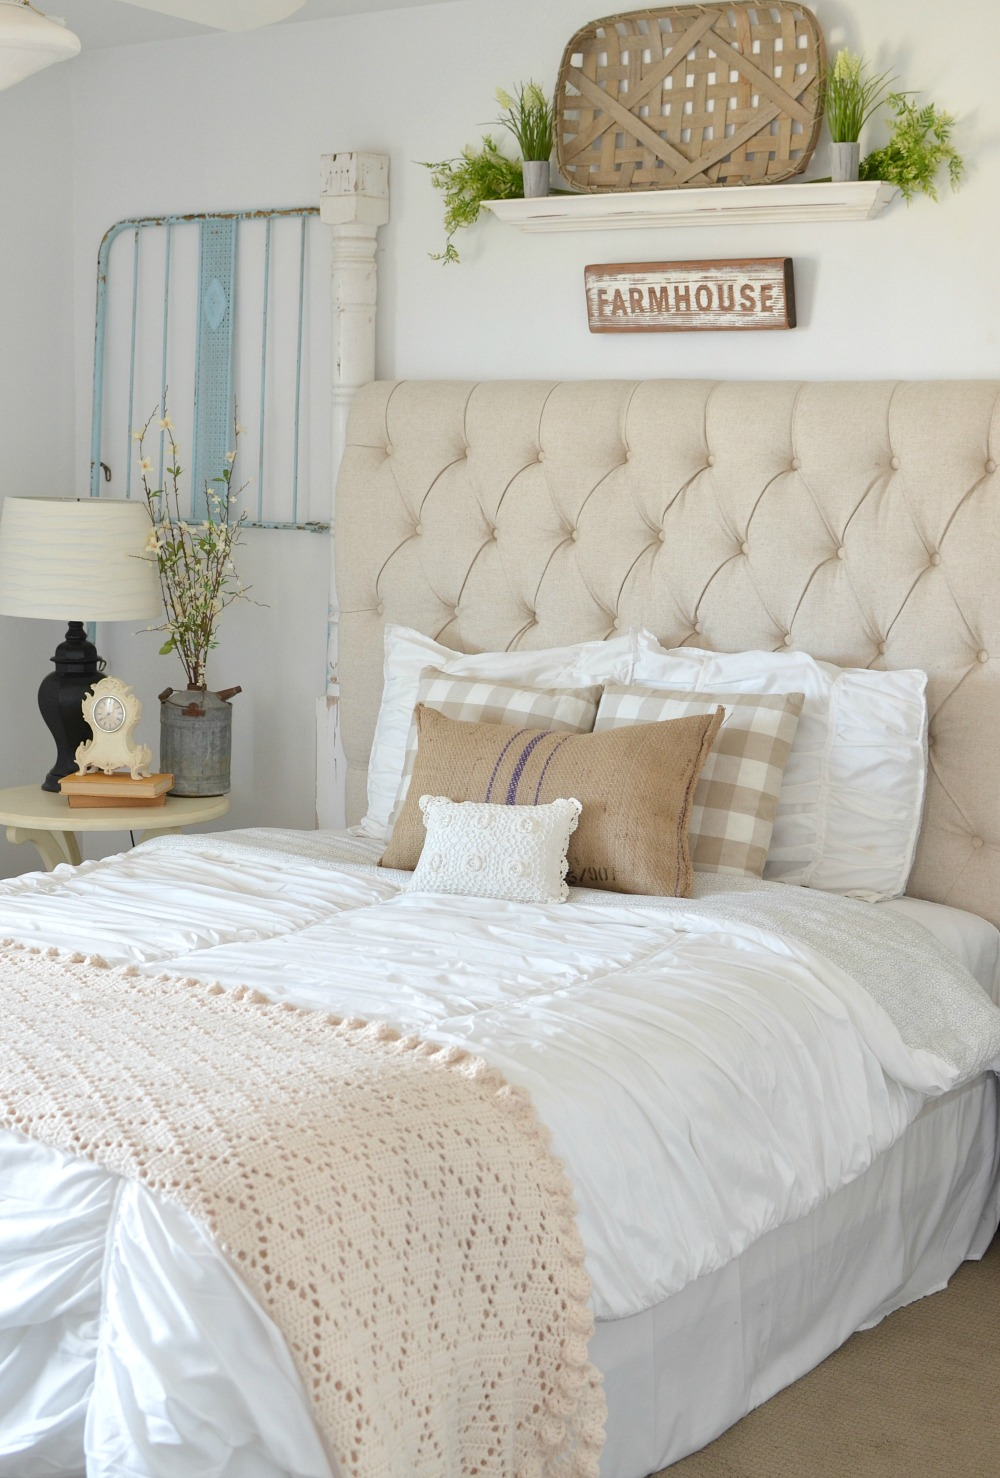 Vintage crib frames in cozy guest bedroom for Farmhouse style bed